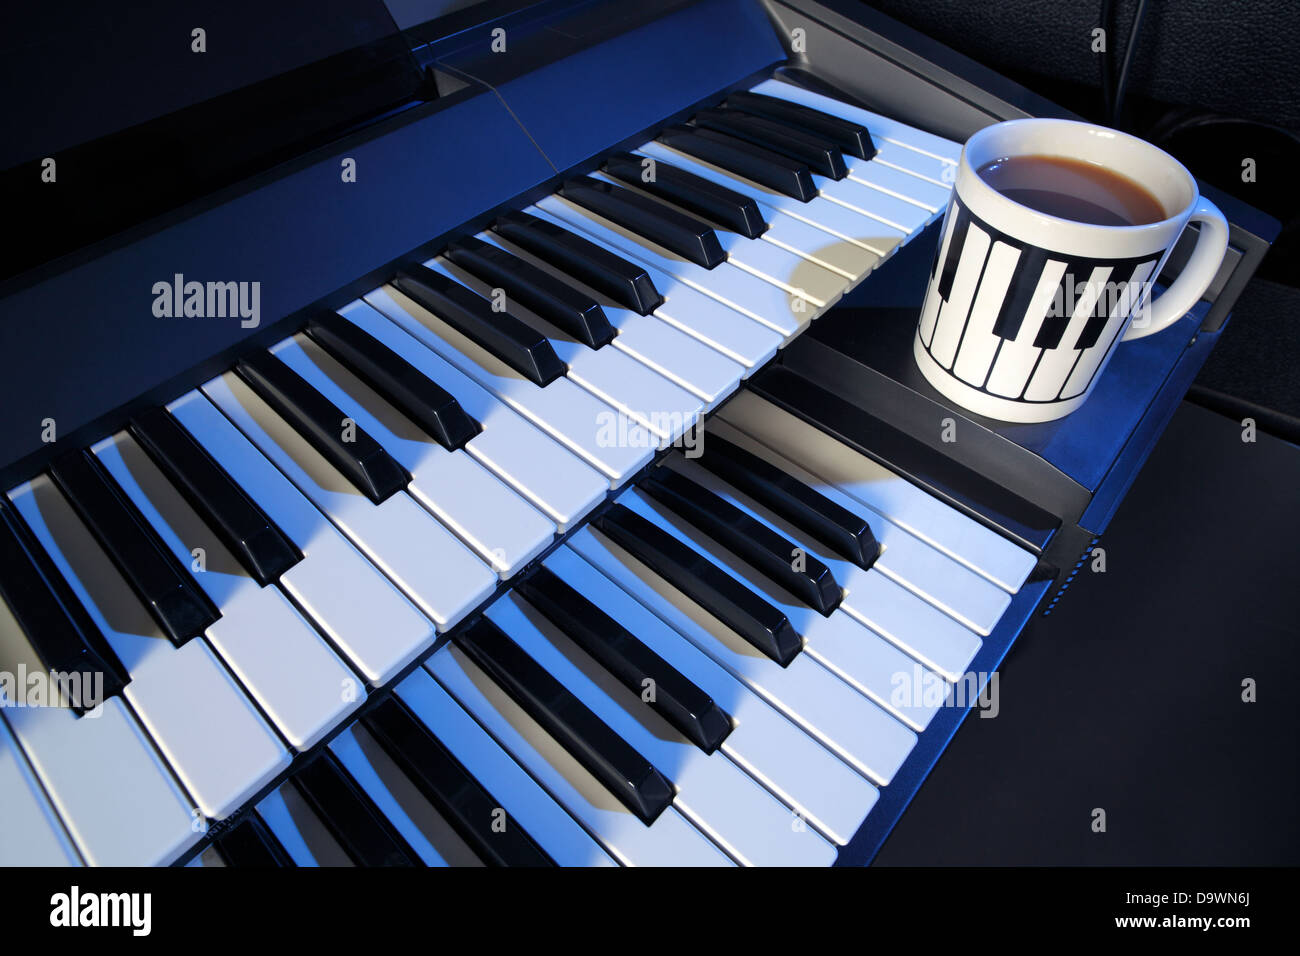 A two manual electric keyboard and a cup of tea (milk, no sugar). - Stock Image